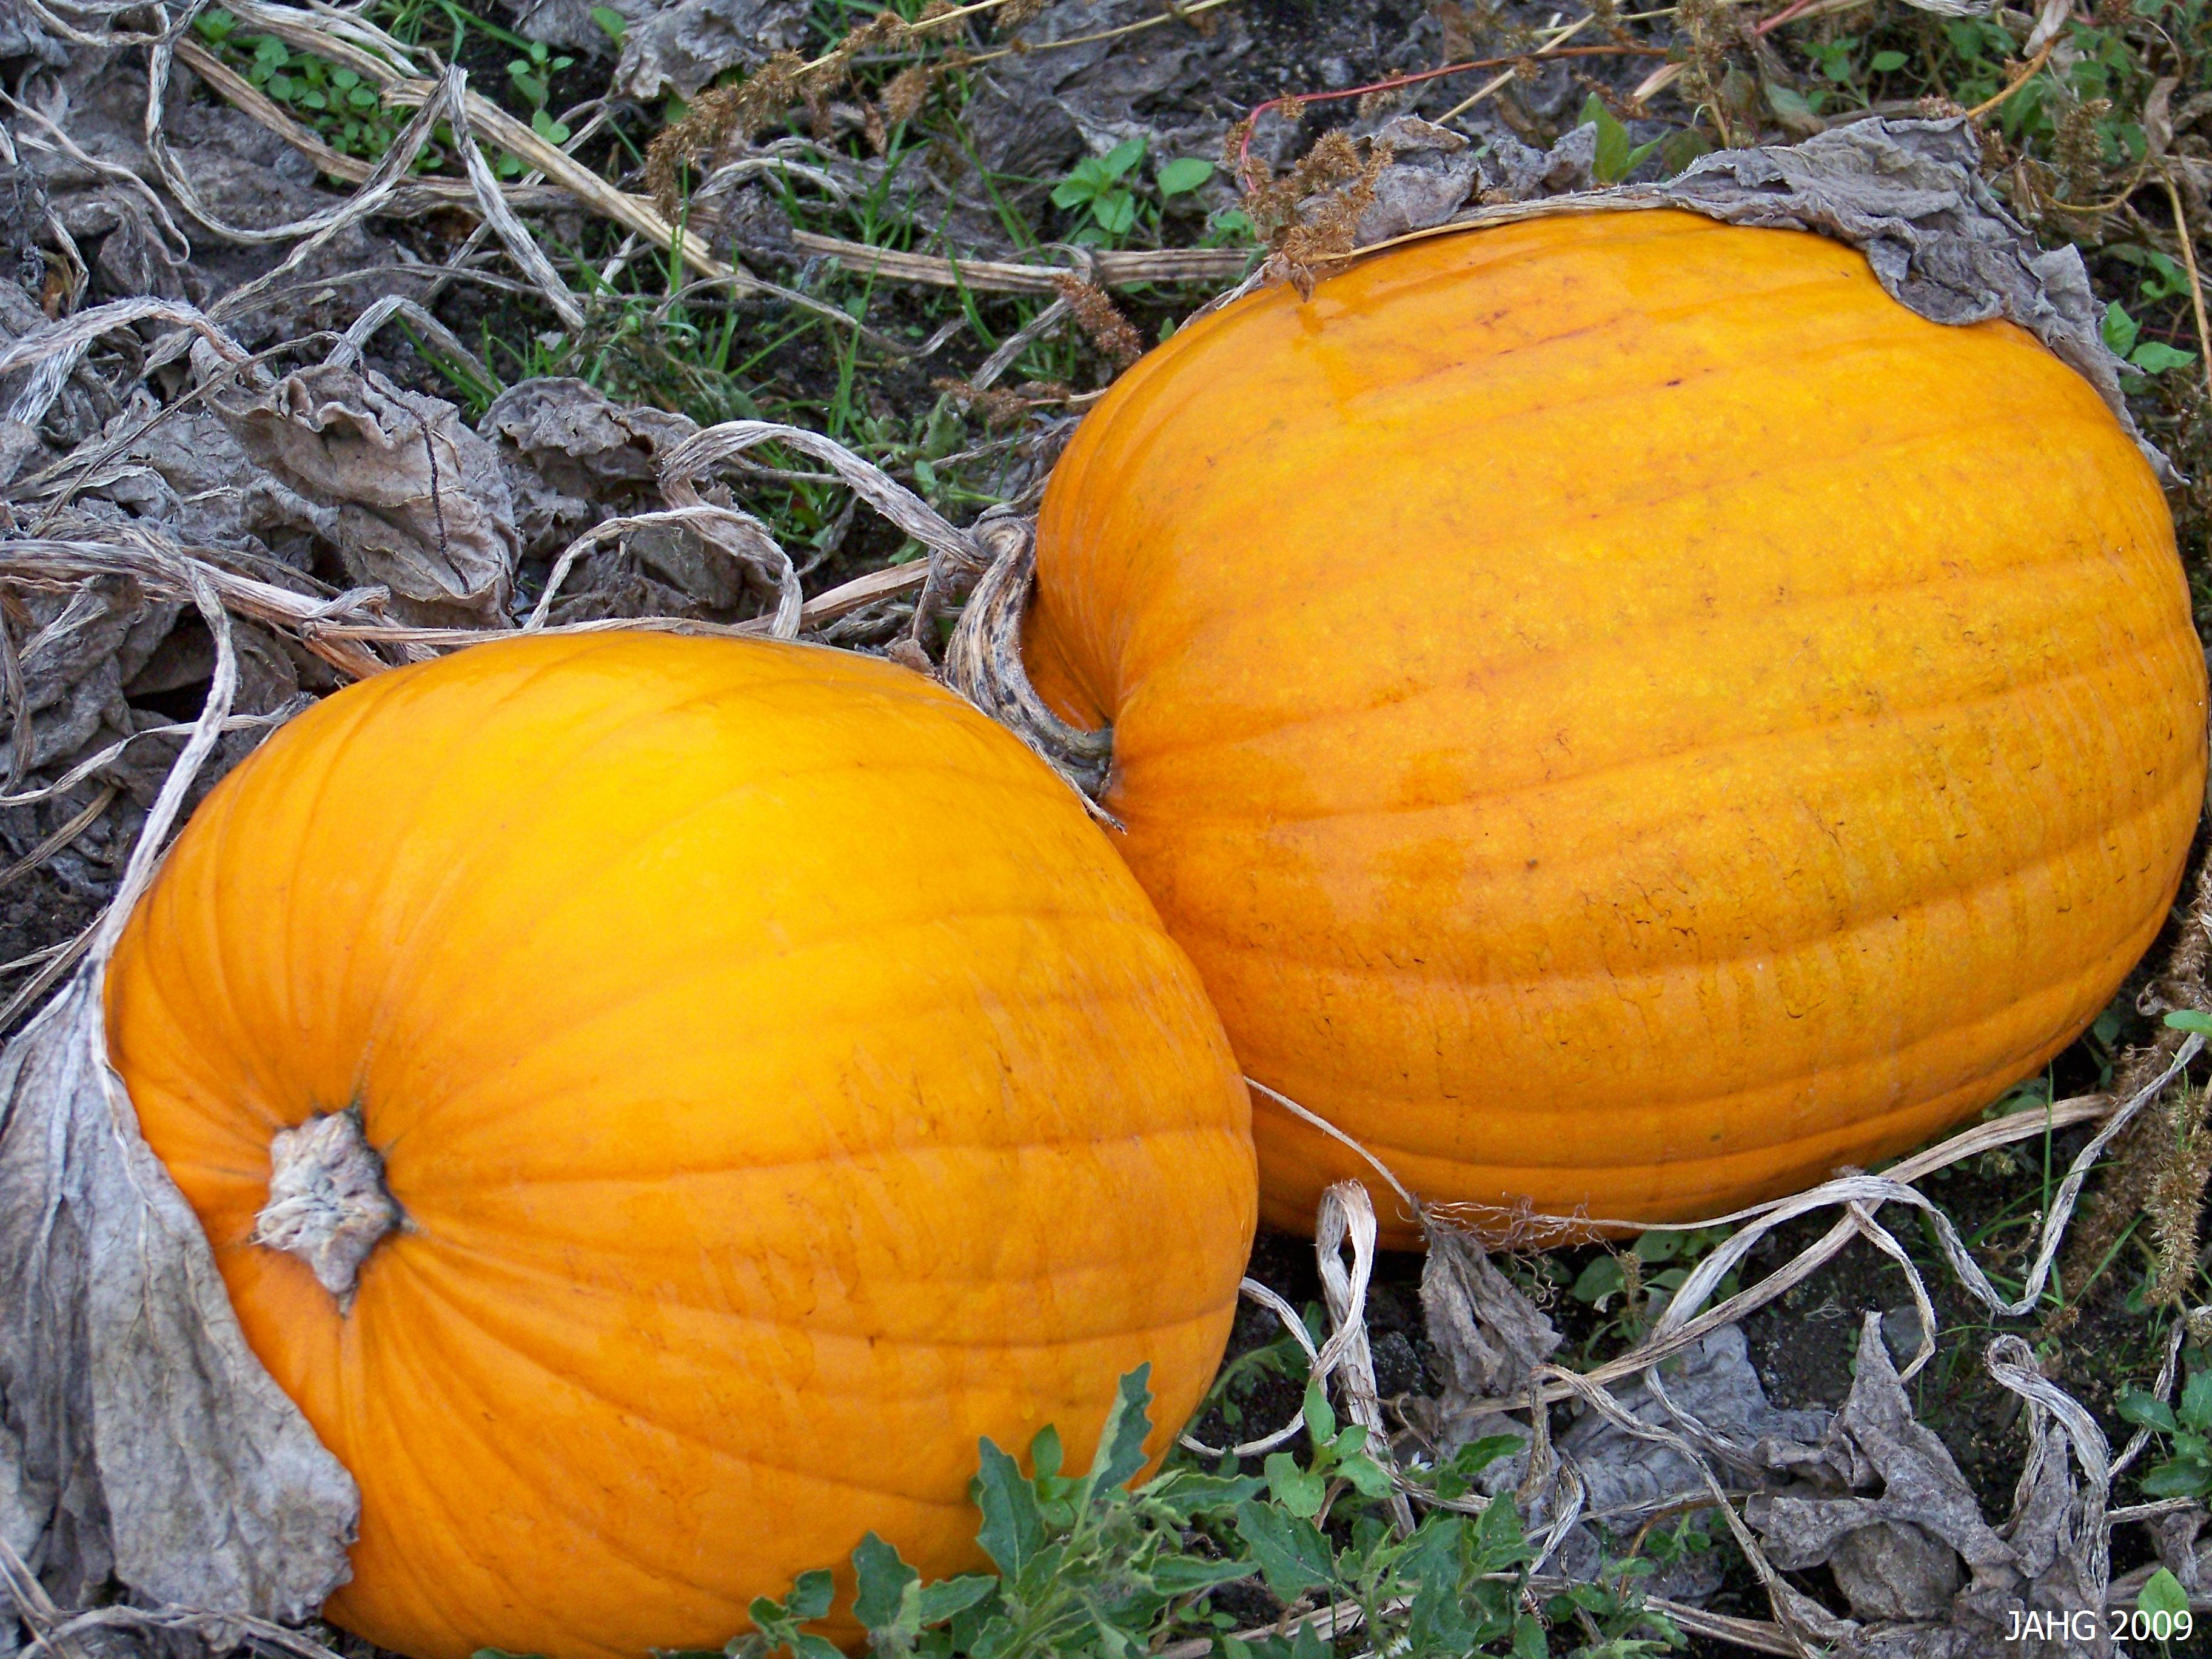 Two unsuspecting Pumpkins in the field sunning themselves, little do they know what comes next!